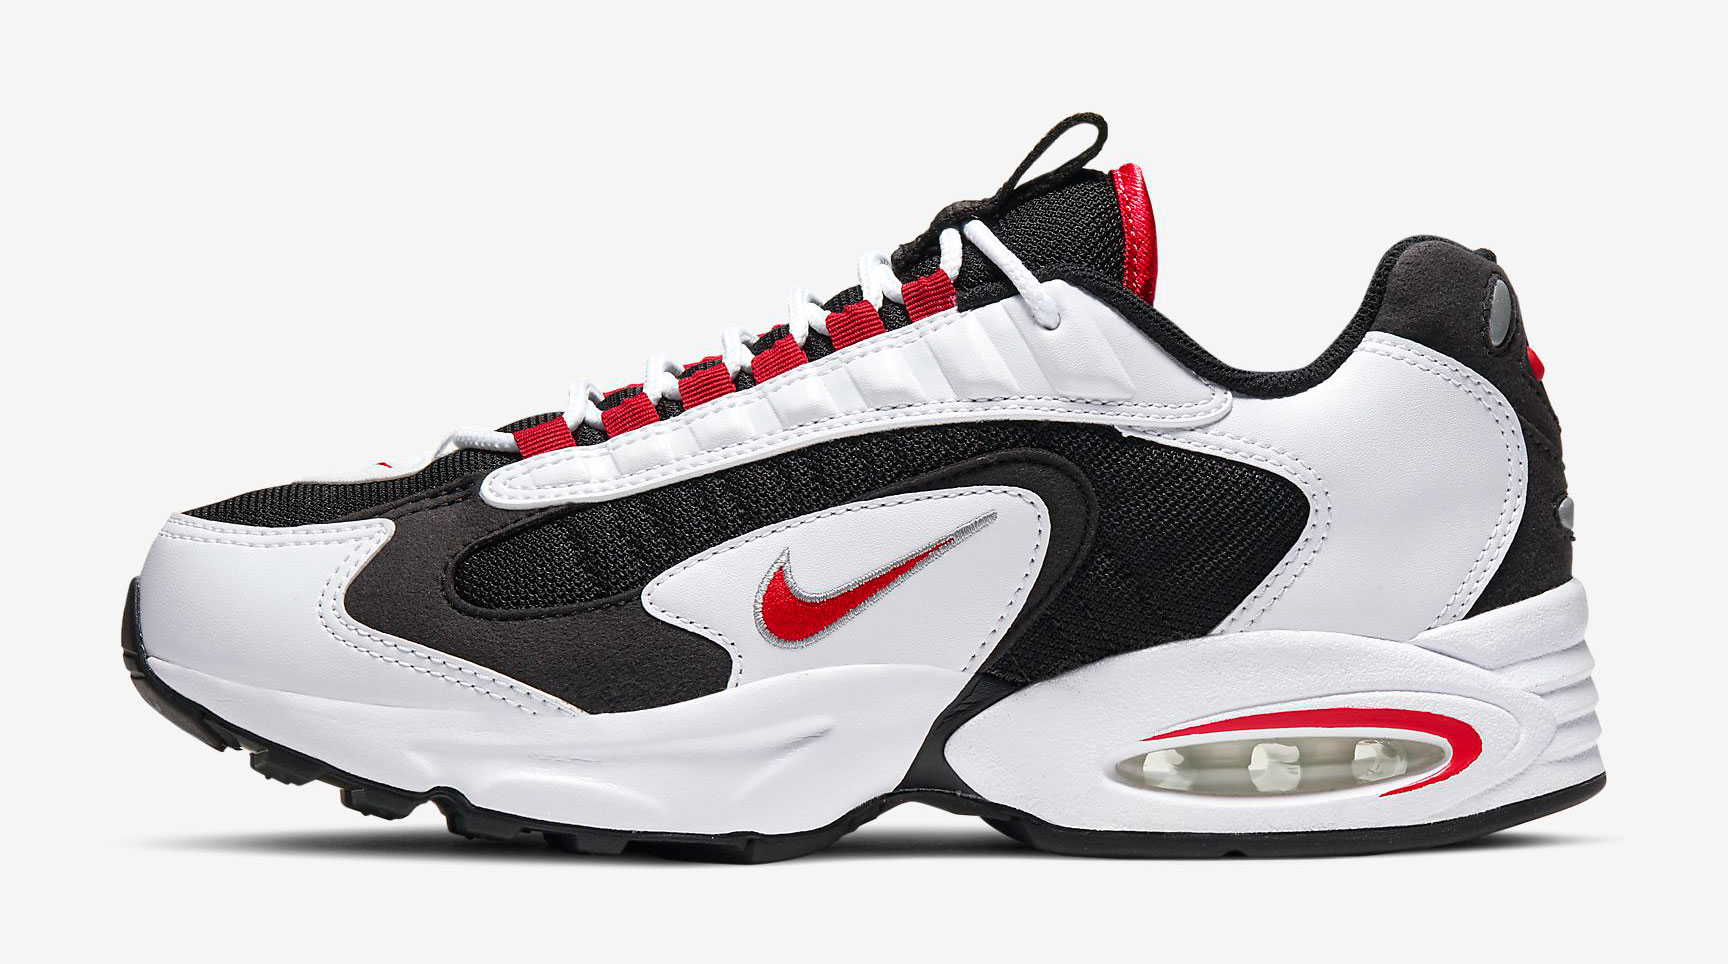 nike-air-max-triax-96-white-black-red-release-date